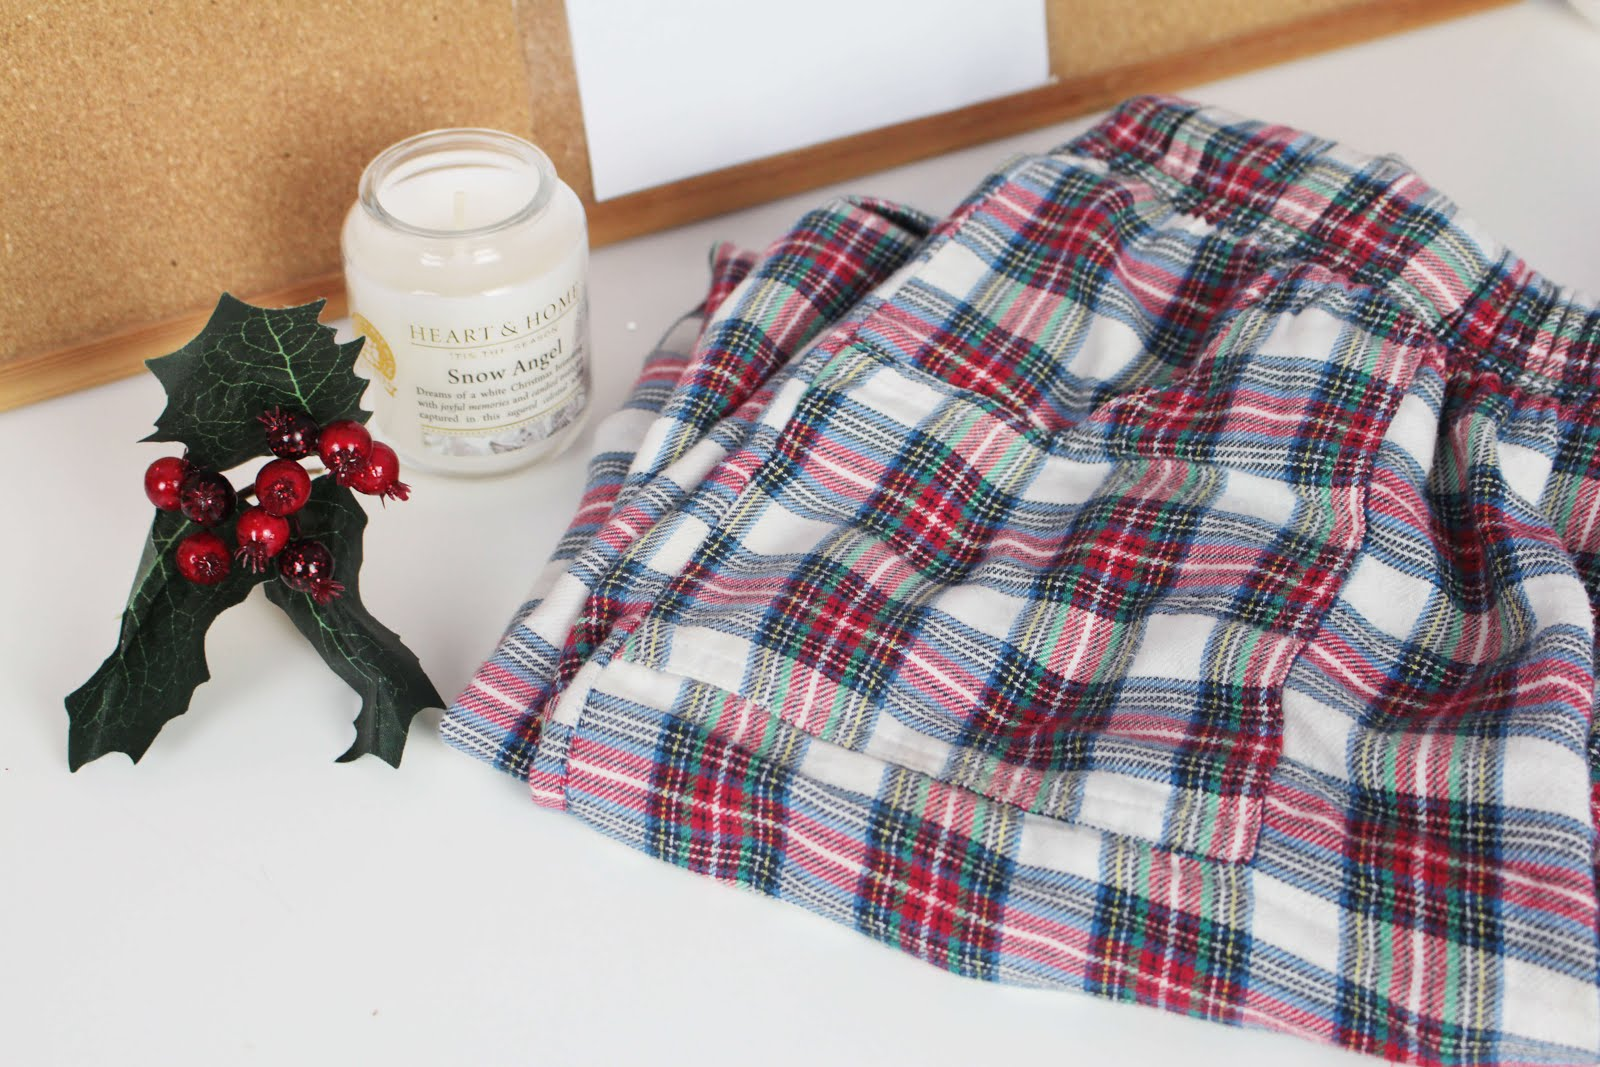 favourite winter items flannel pyjamas